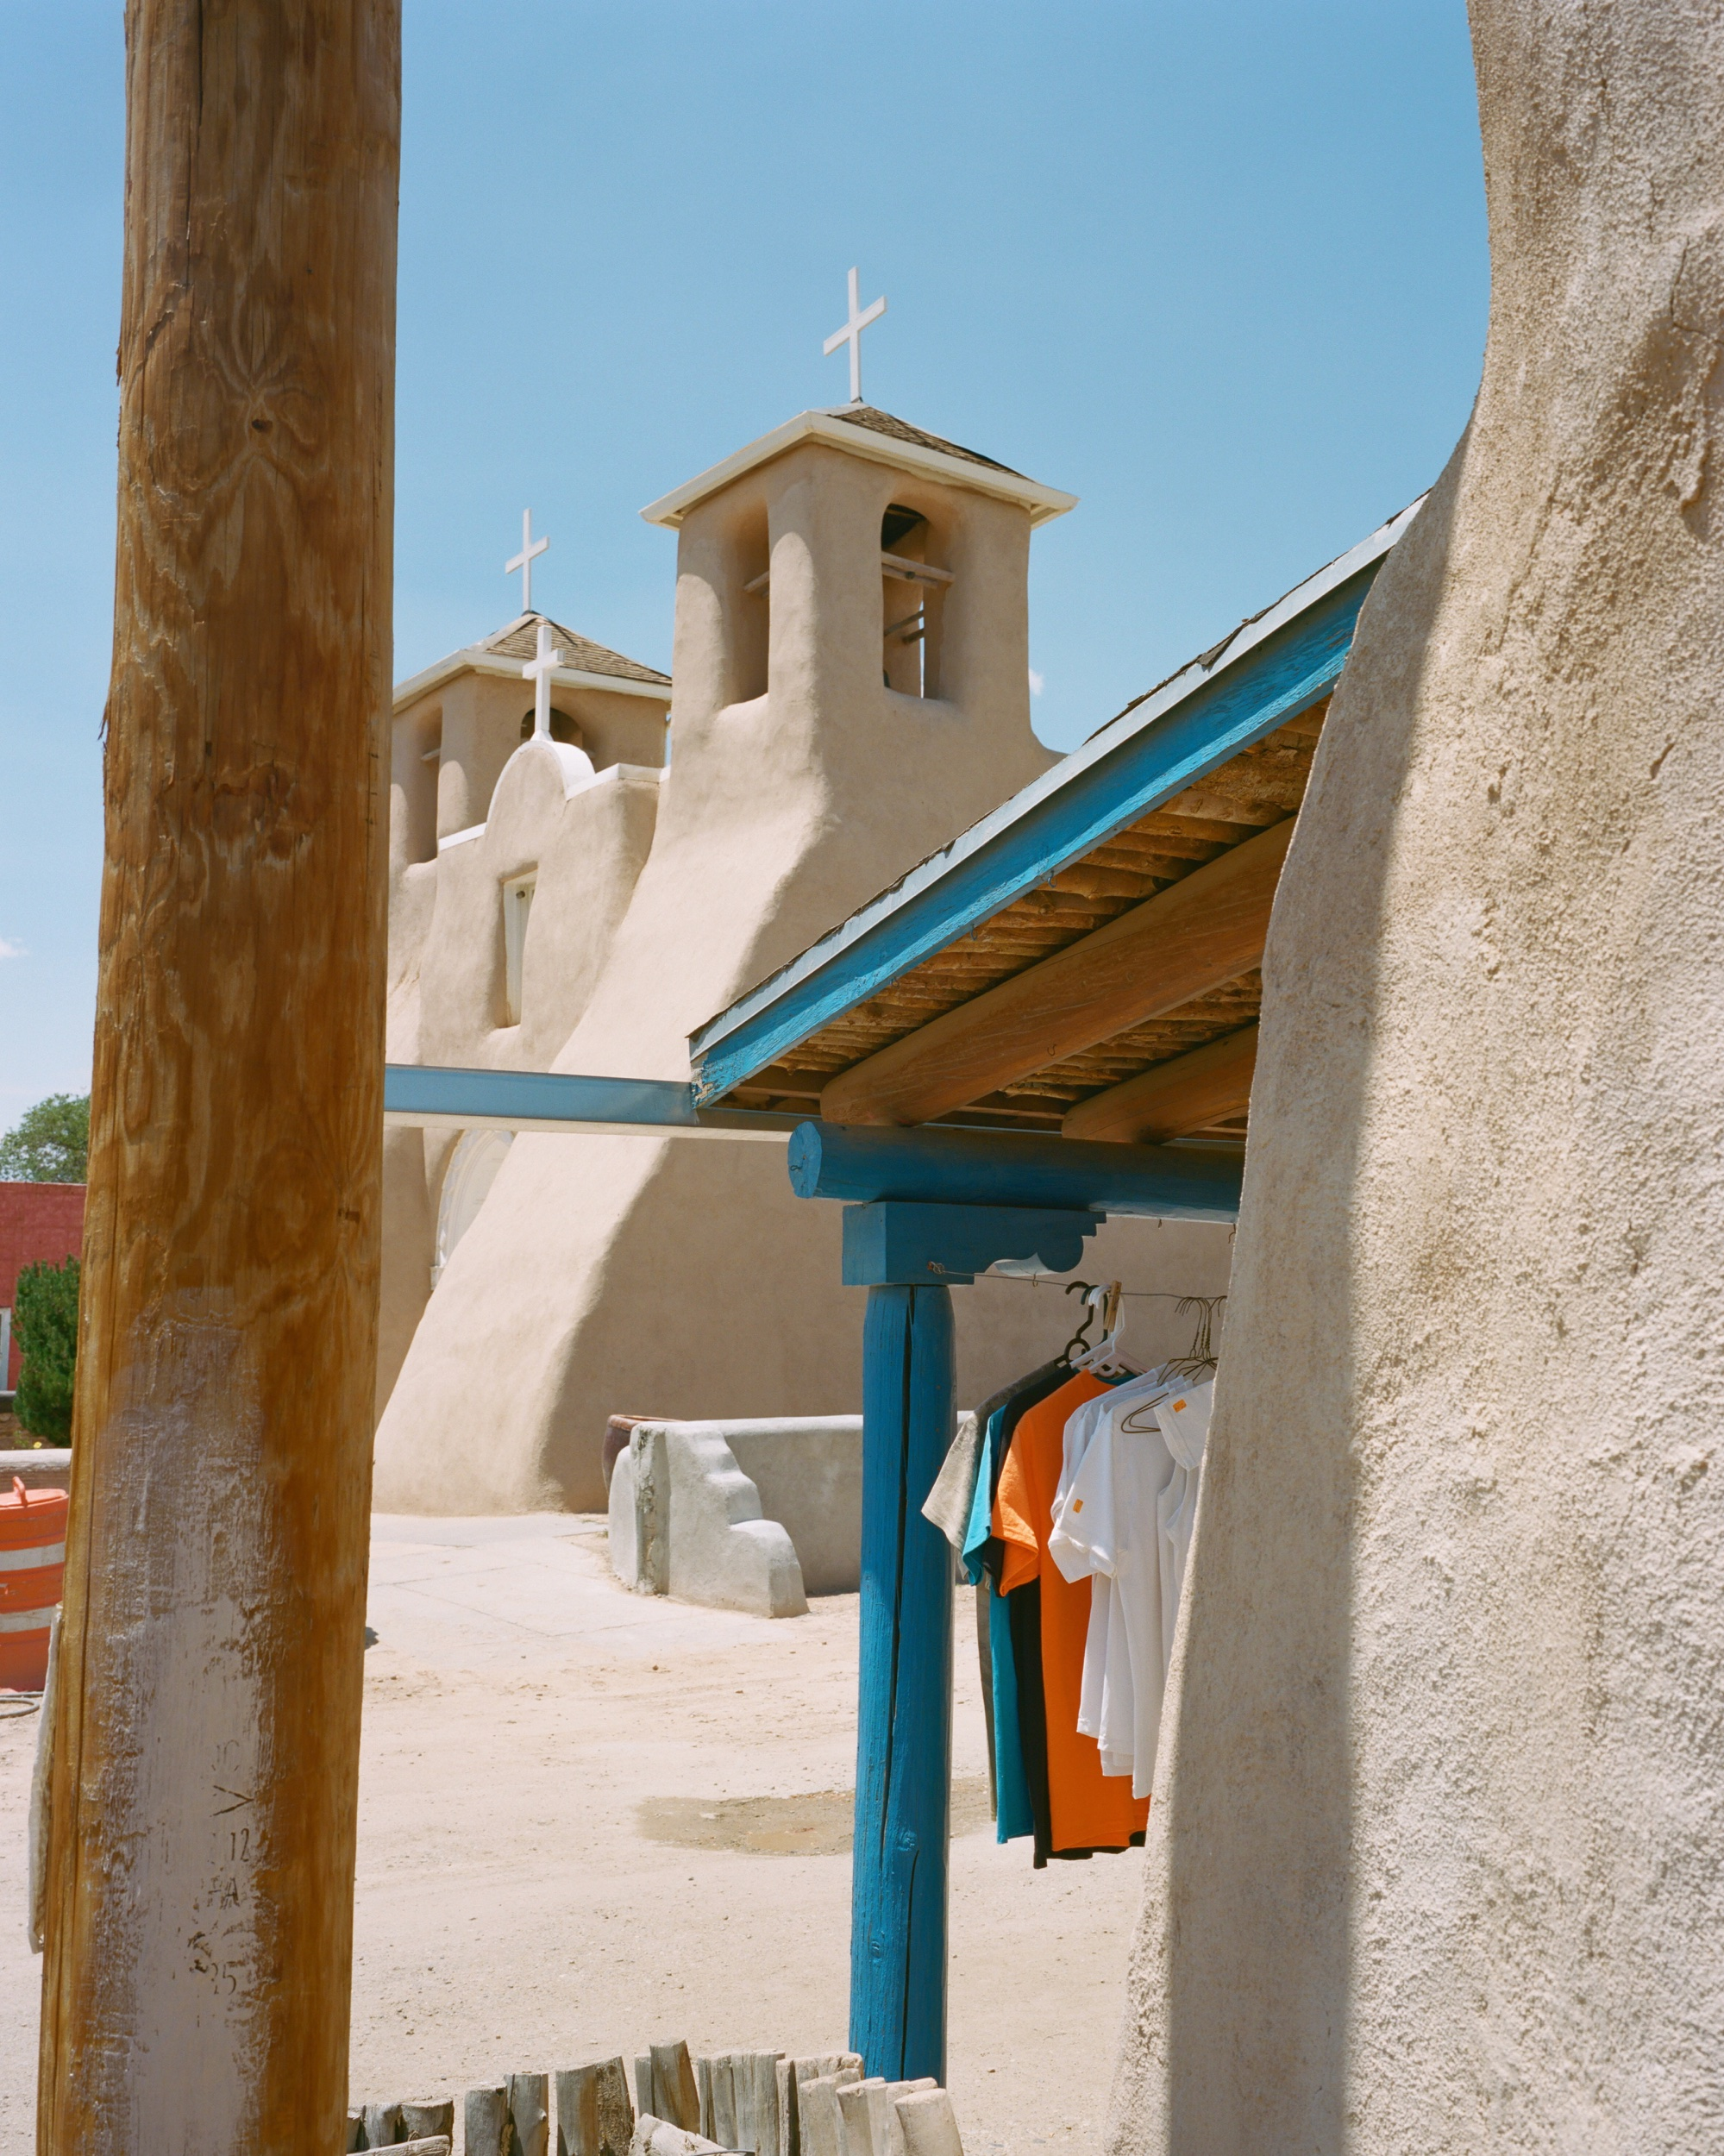 Gift shop t-shirts hanging in view of San Francisco de Asis Church, July 2019 - 120 Portra (6x7)